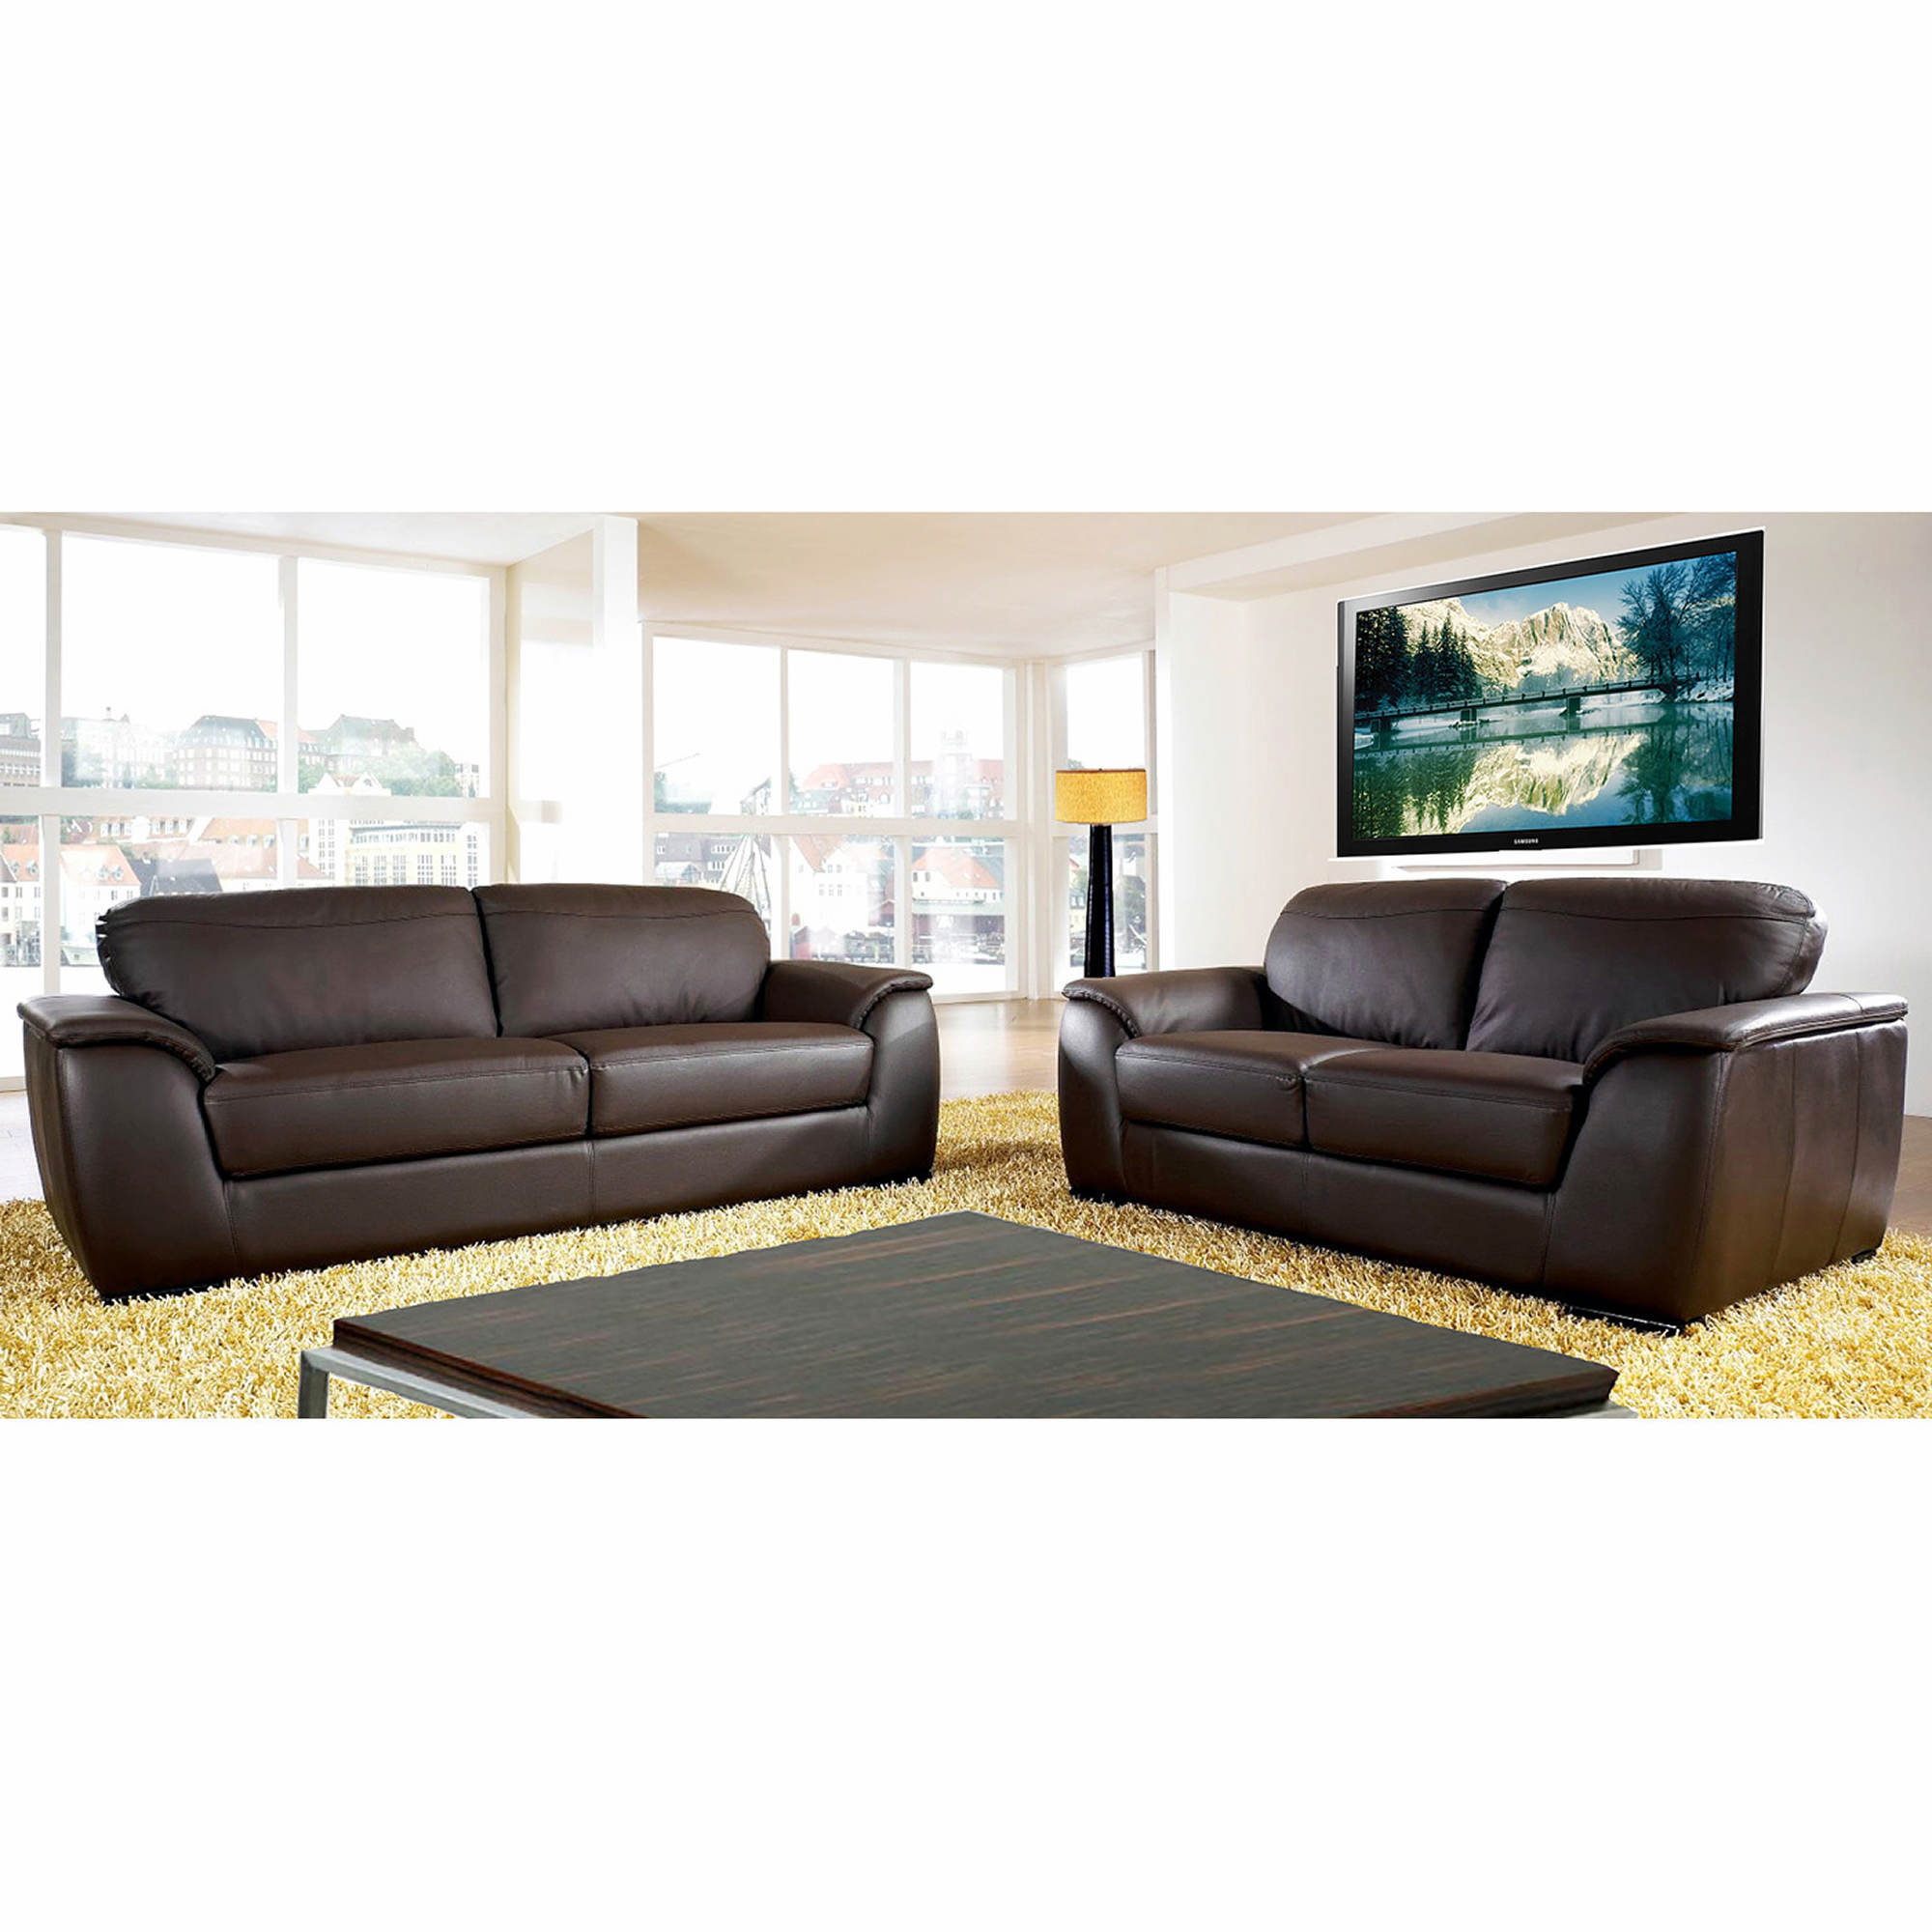 Abbyson Avalon 2-Piece Room Set